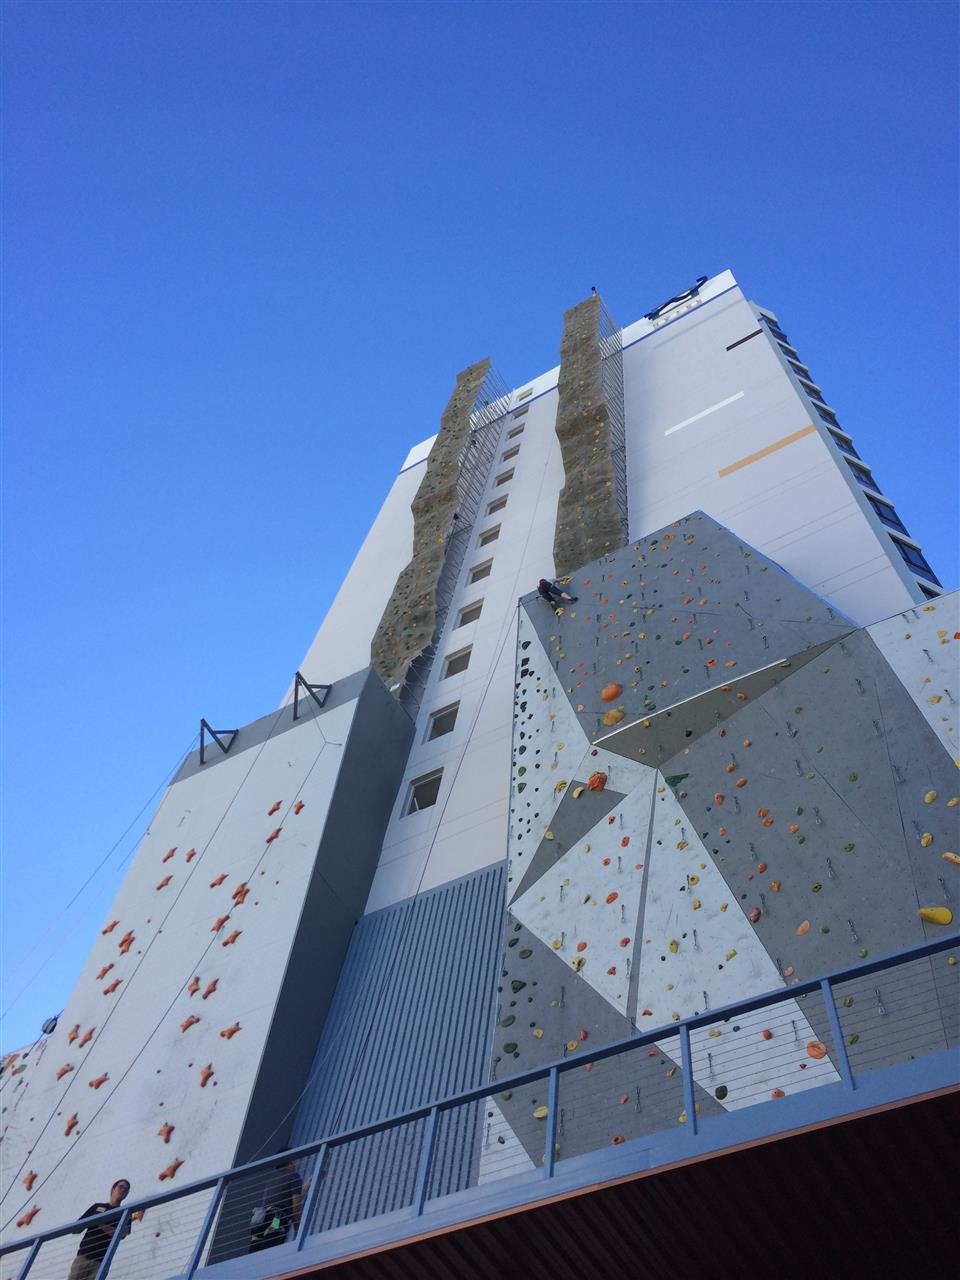 #Reno, NV #Whitney Peak Hotel Rock Climbing Wall